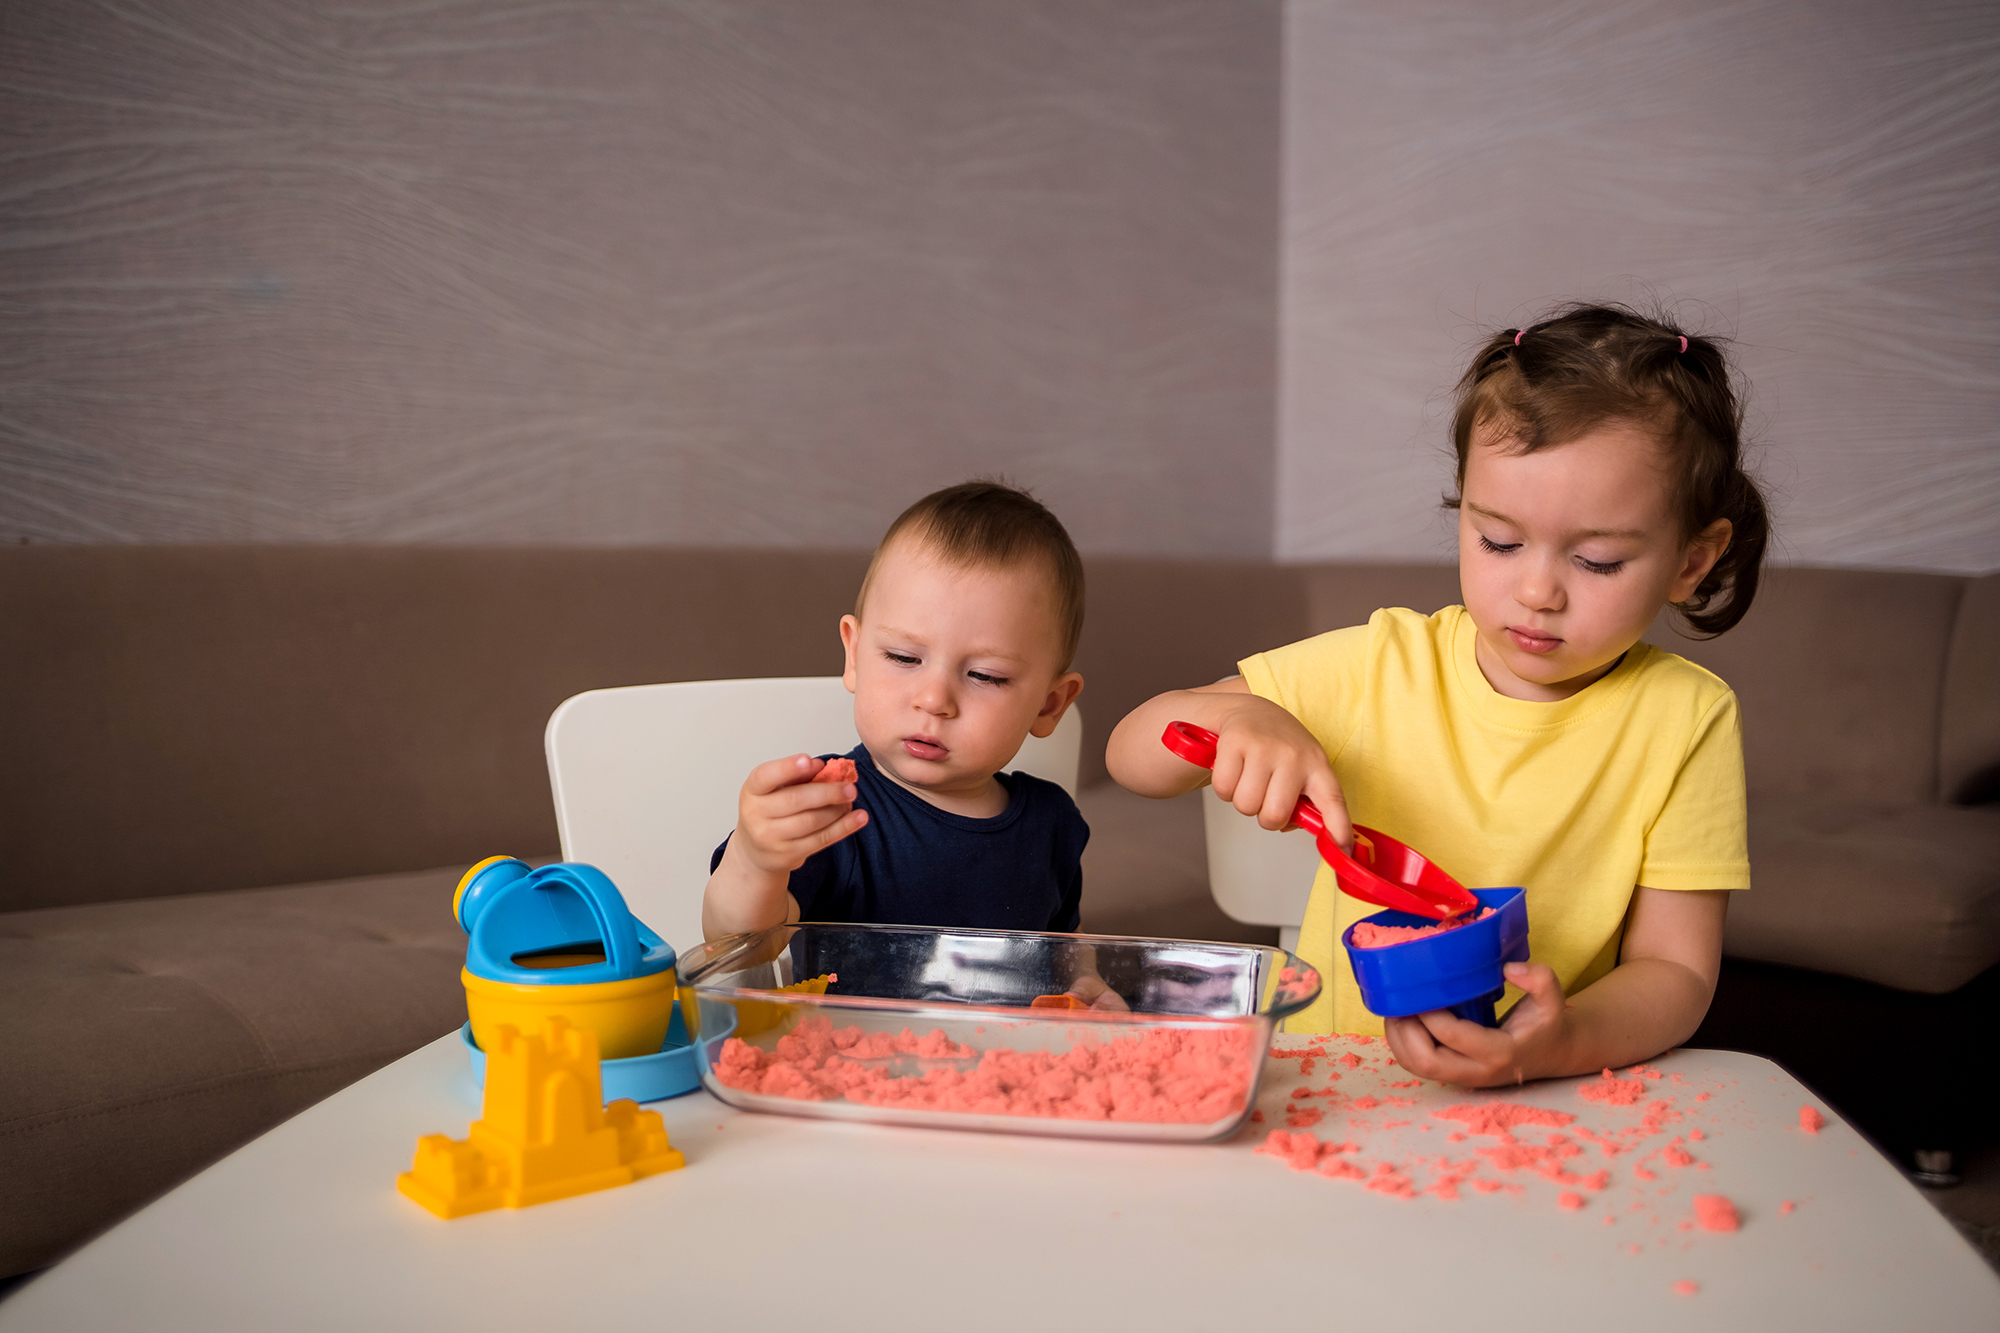 Sensory bins are containers filled with different objects that encourage children to use all their senses